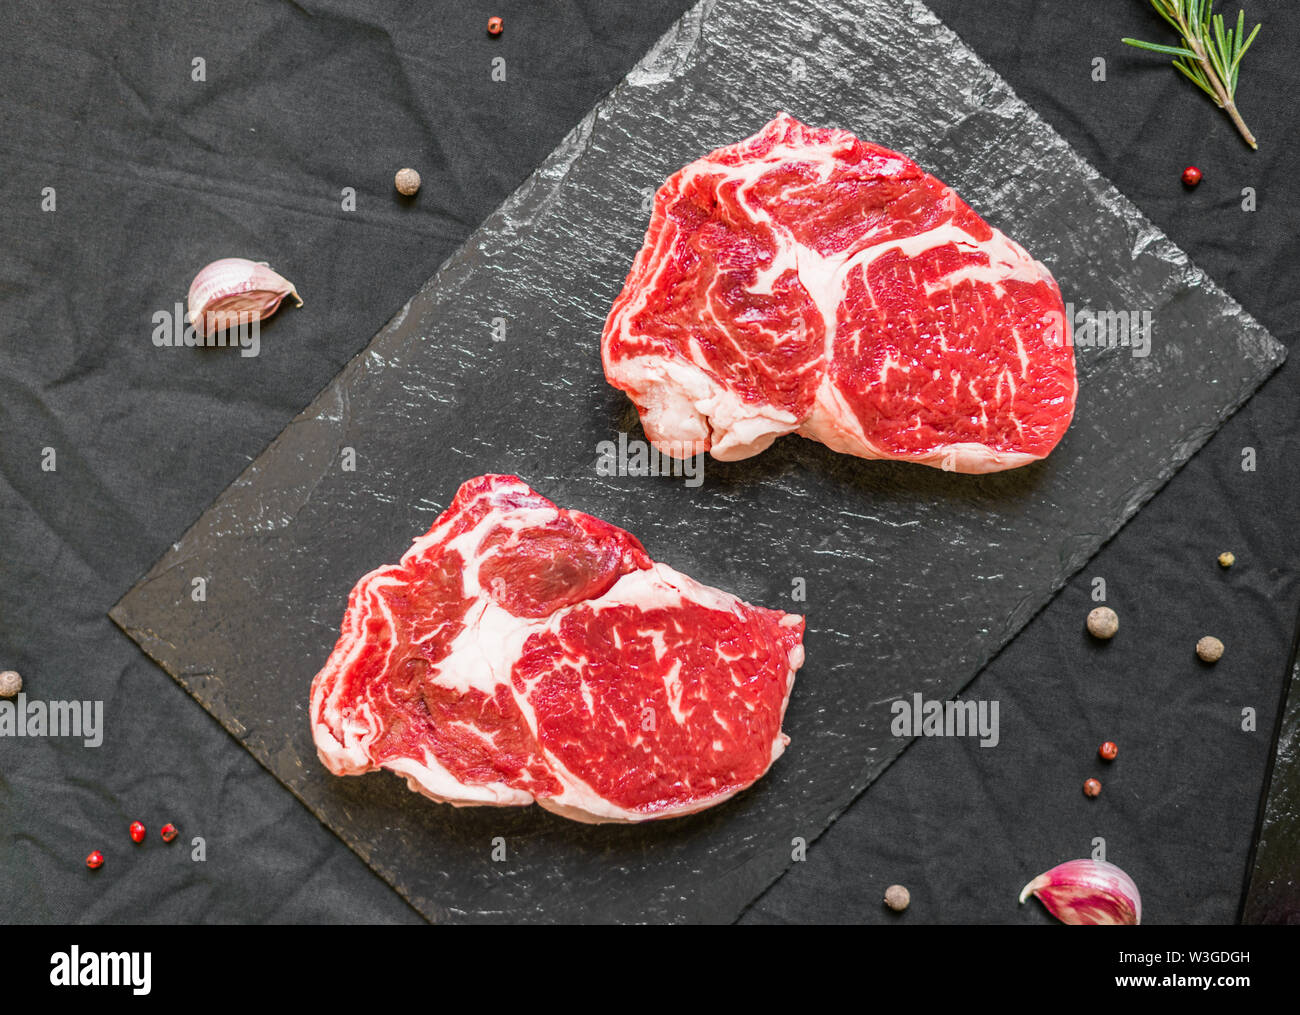 Rib eye beef cow steak meat with spices and herbs against black background - Stock Image